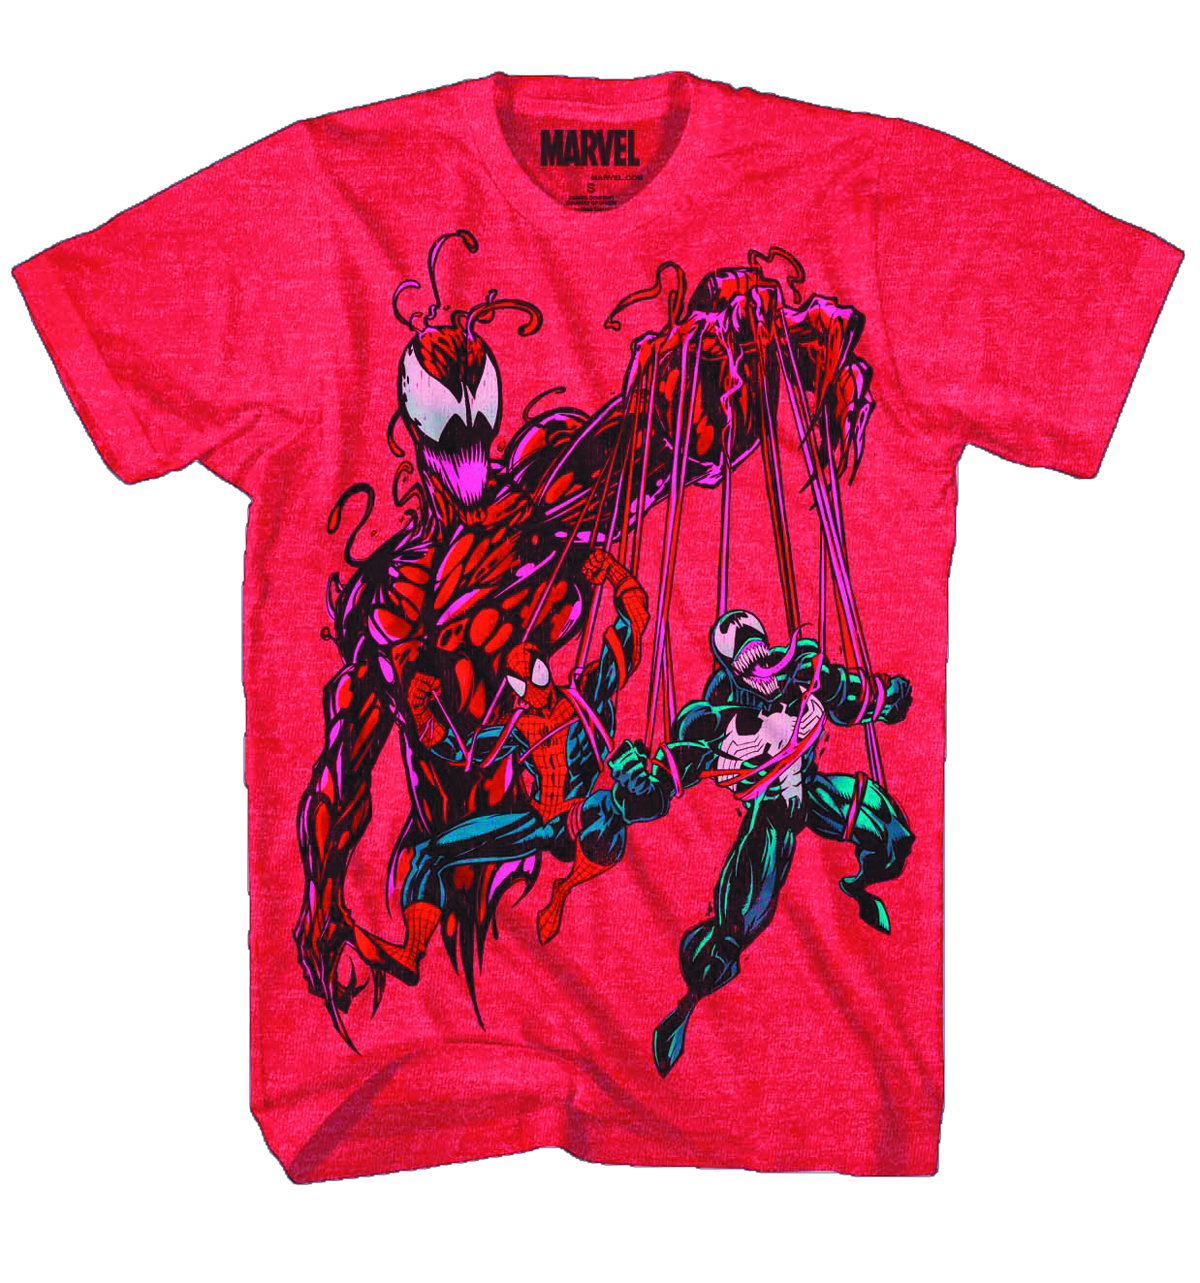 CARNAGE CARNAL PUPPET PX RED HEATHER T/S XL